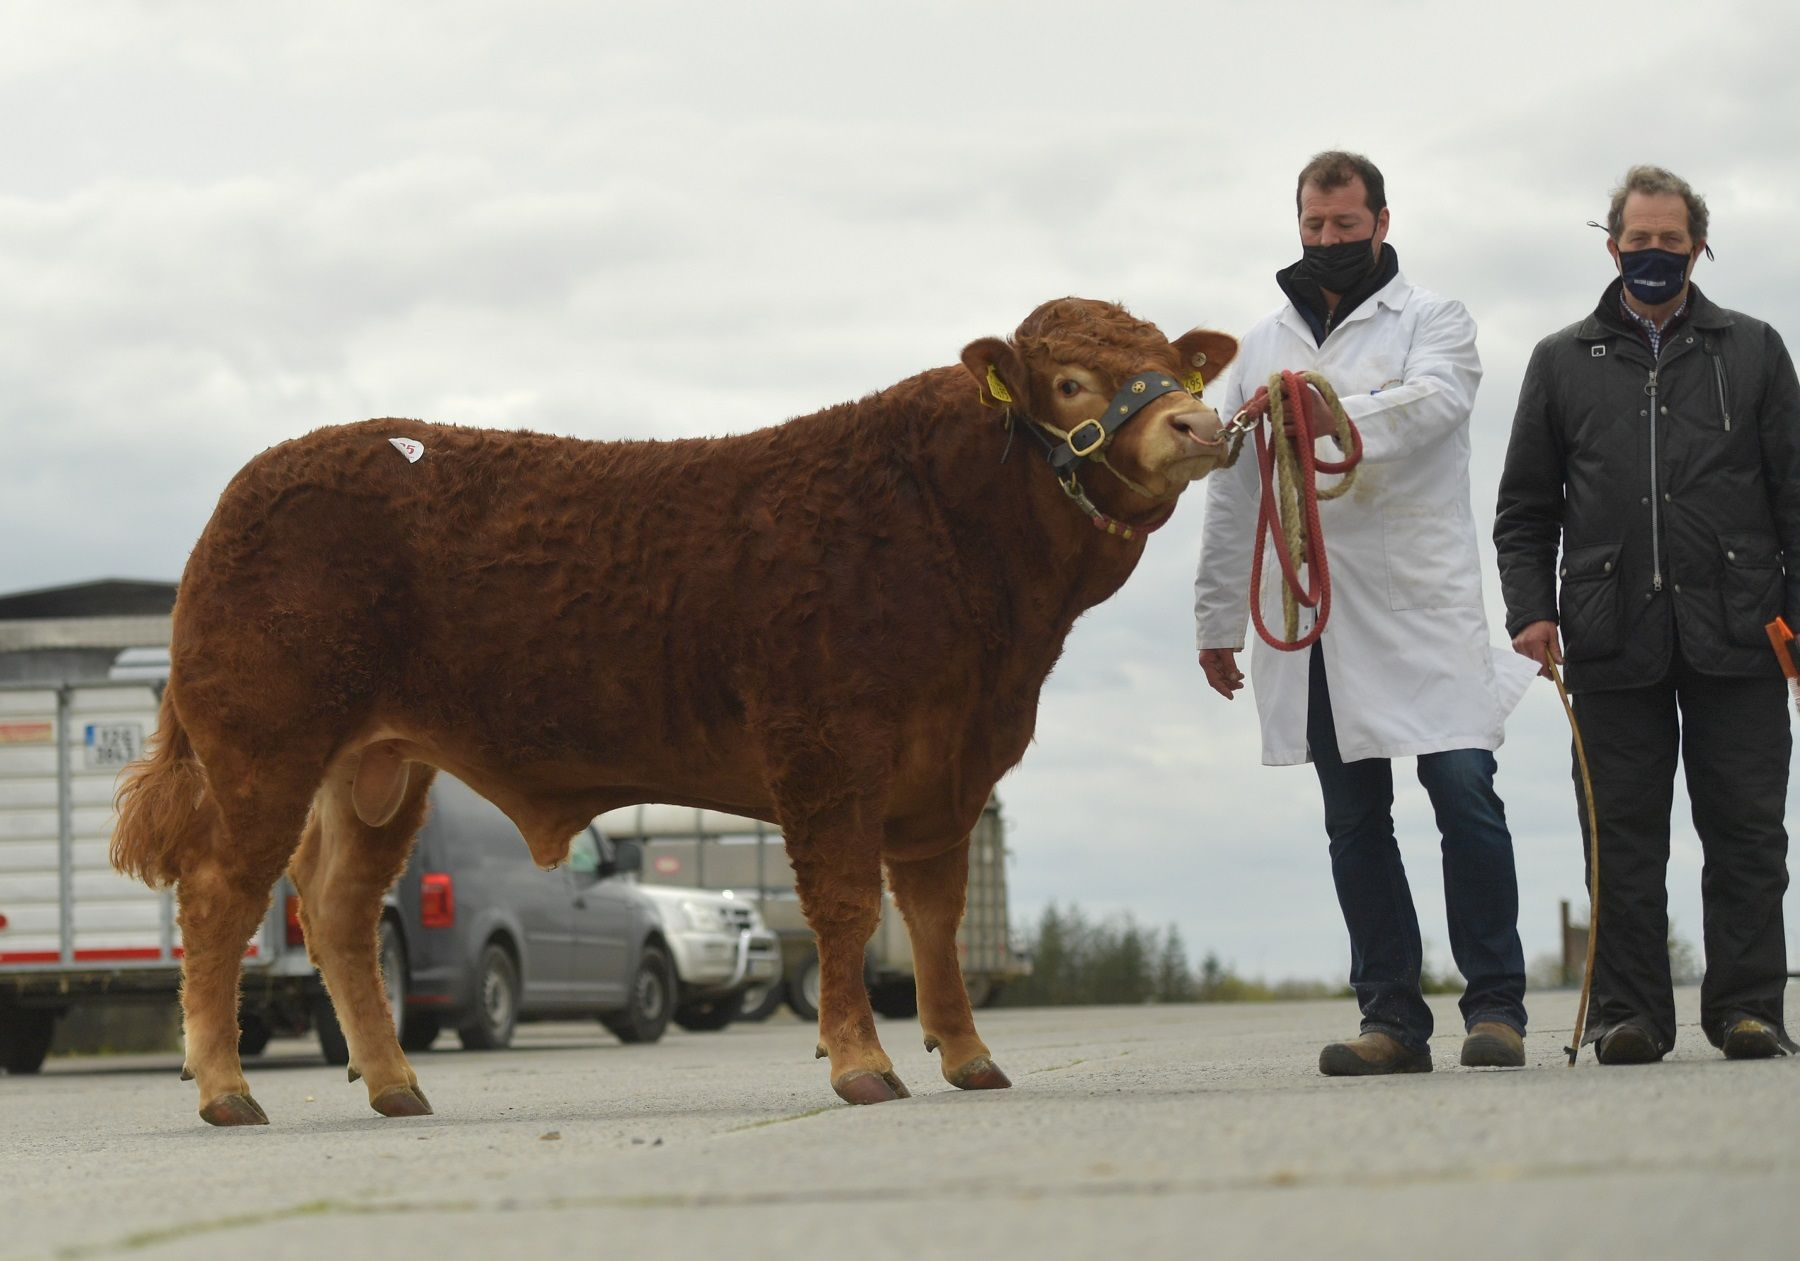 Newtown Rodger, farming news, Limousin sale Athenry report